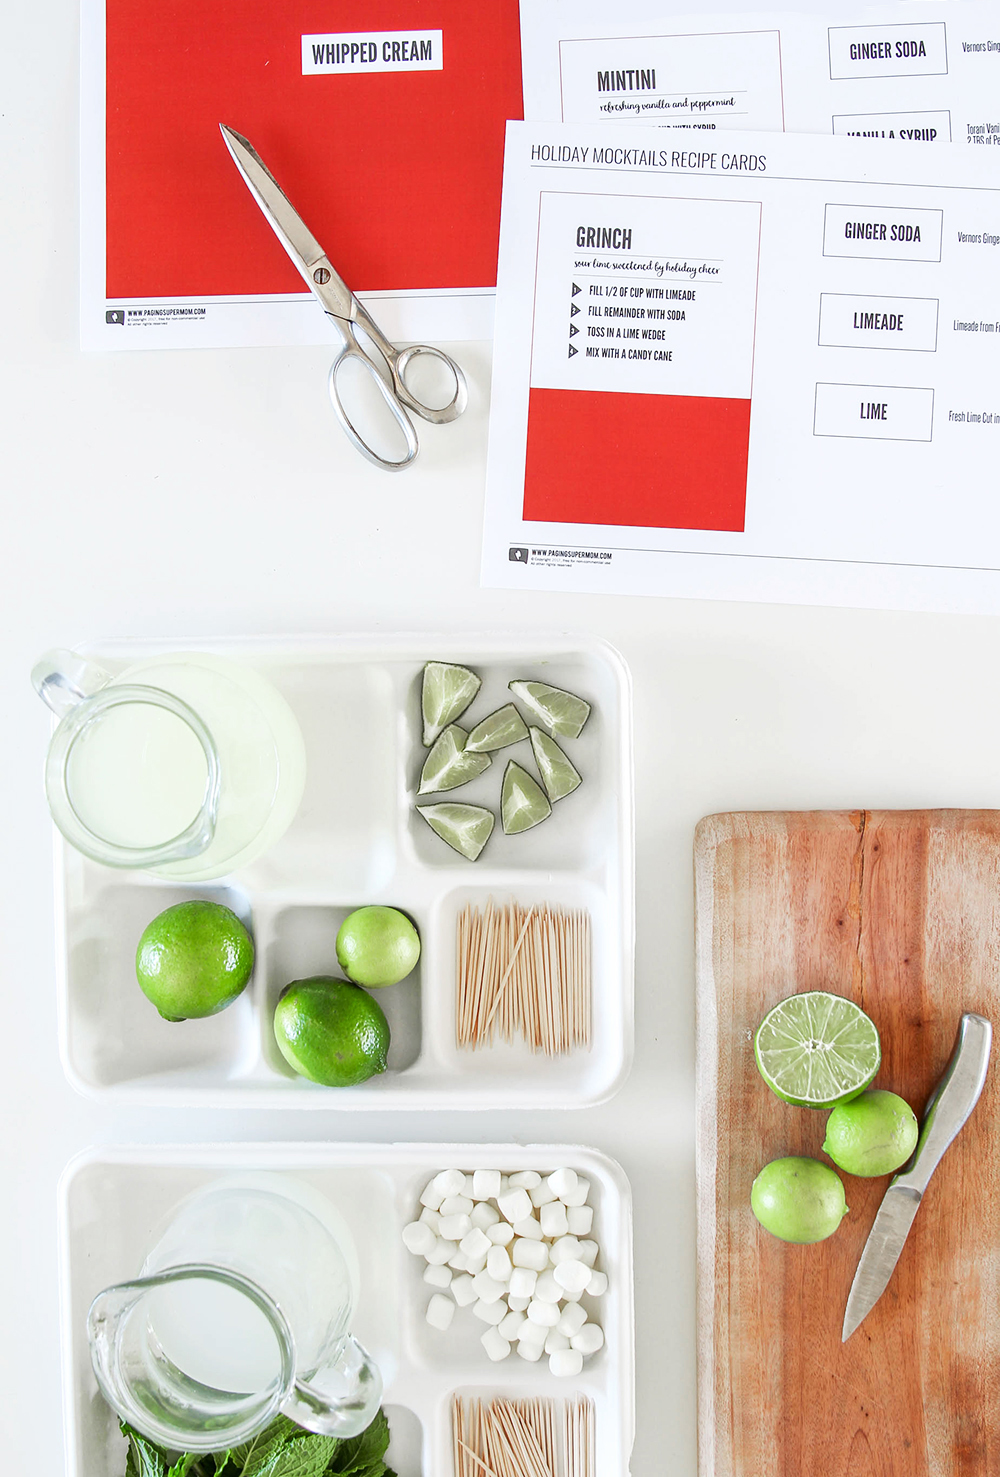 Christmas Cocktails Ideas and Christmas Cockatils Station FREE Printable Kit via @PagingSupermom